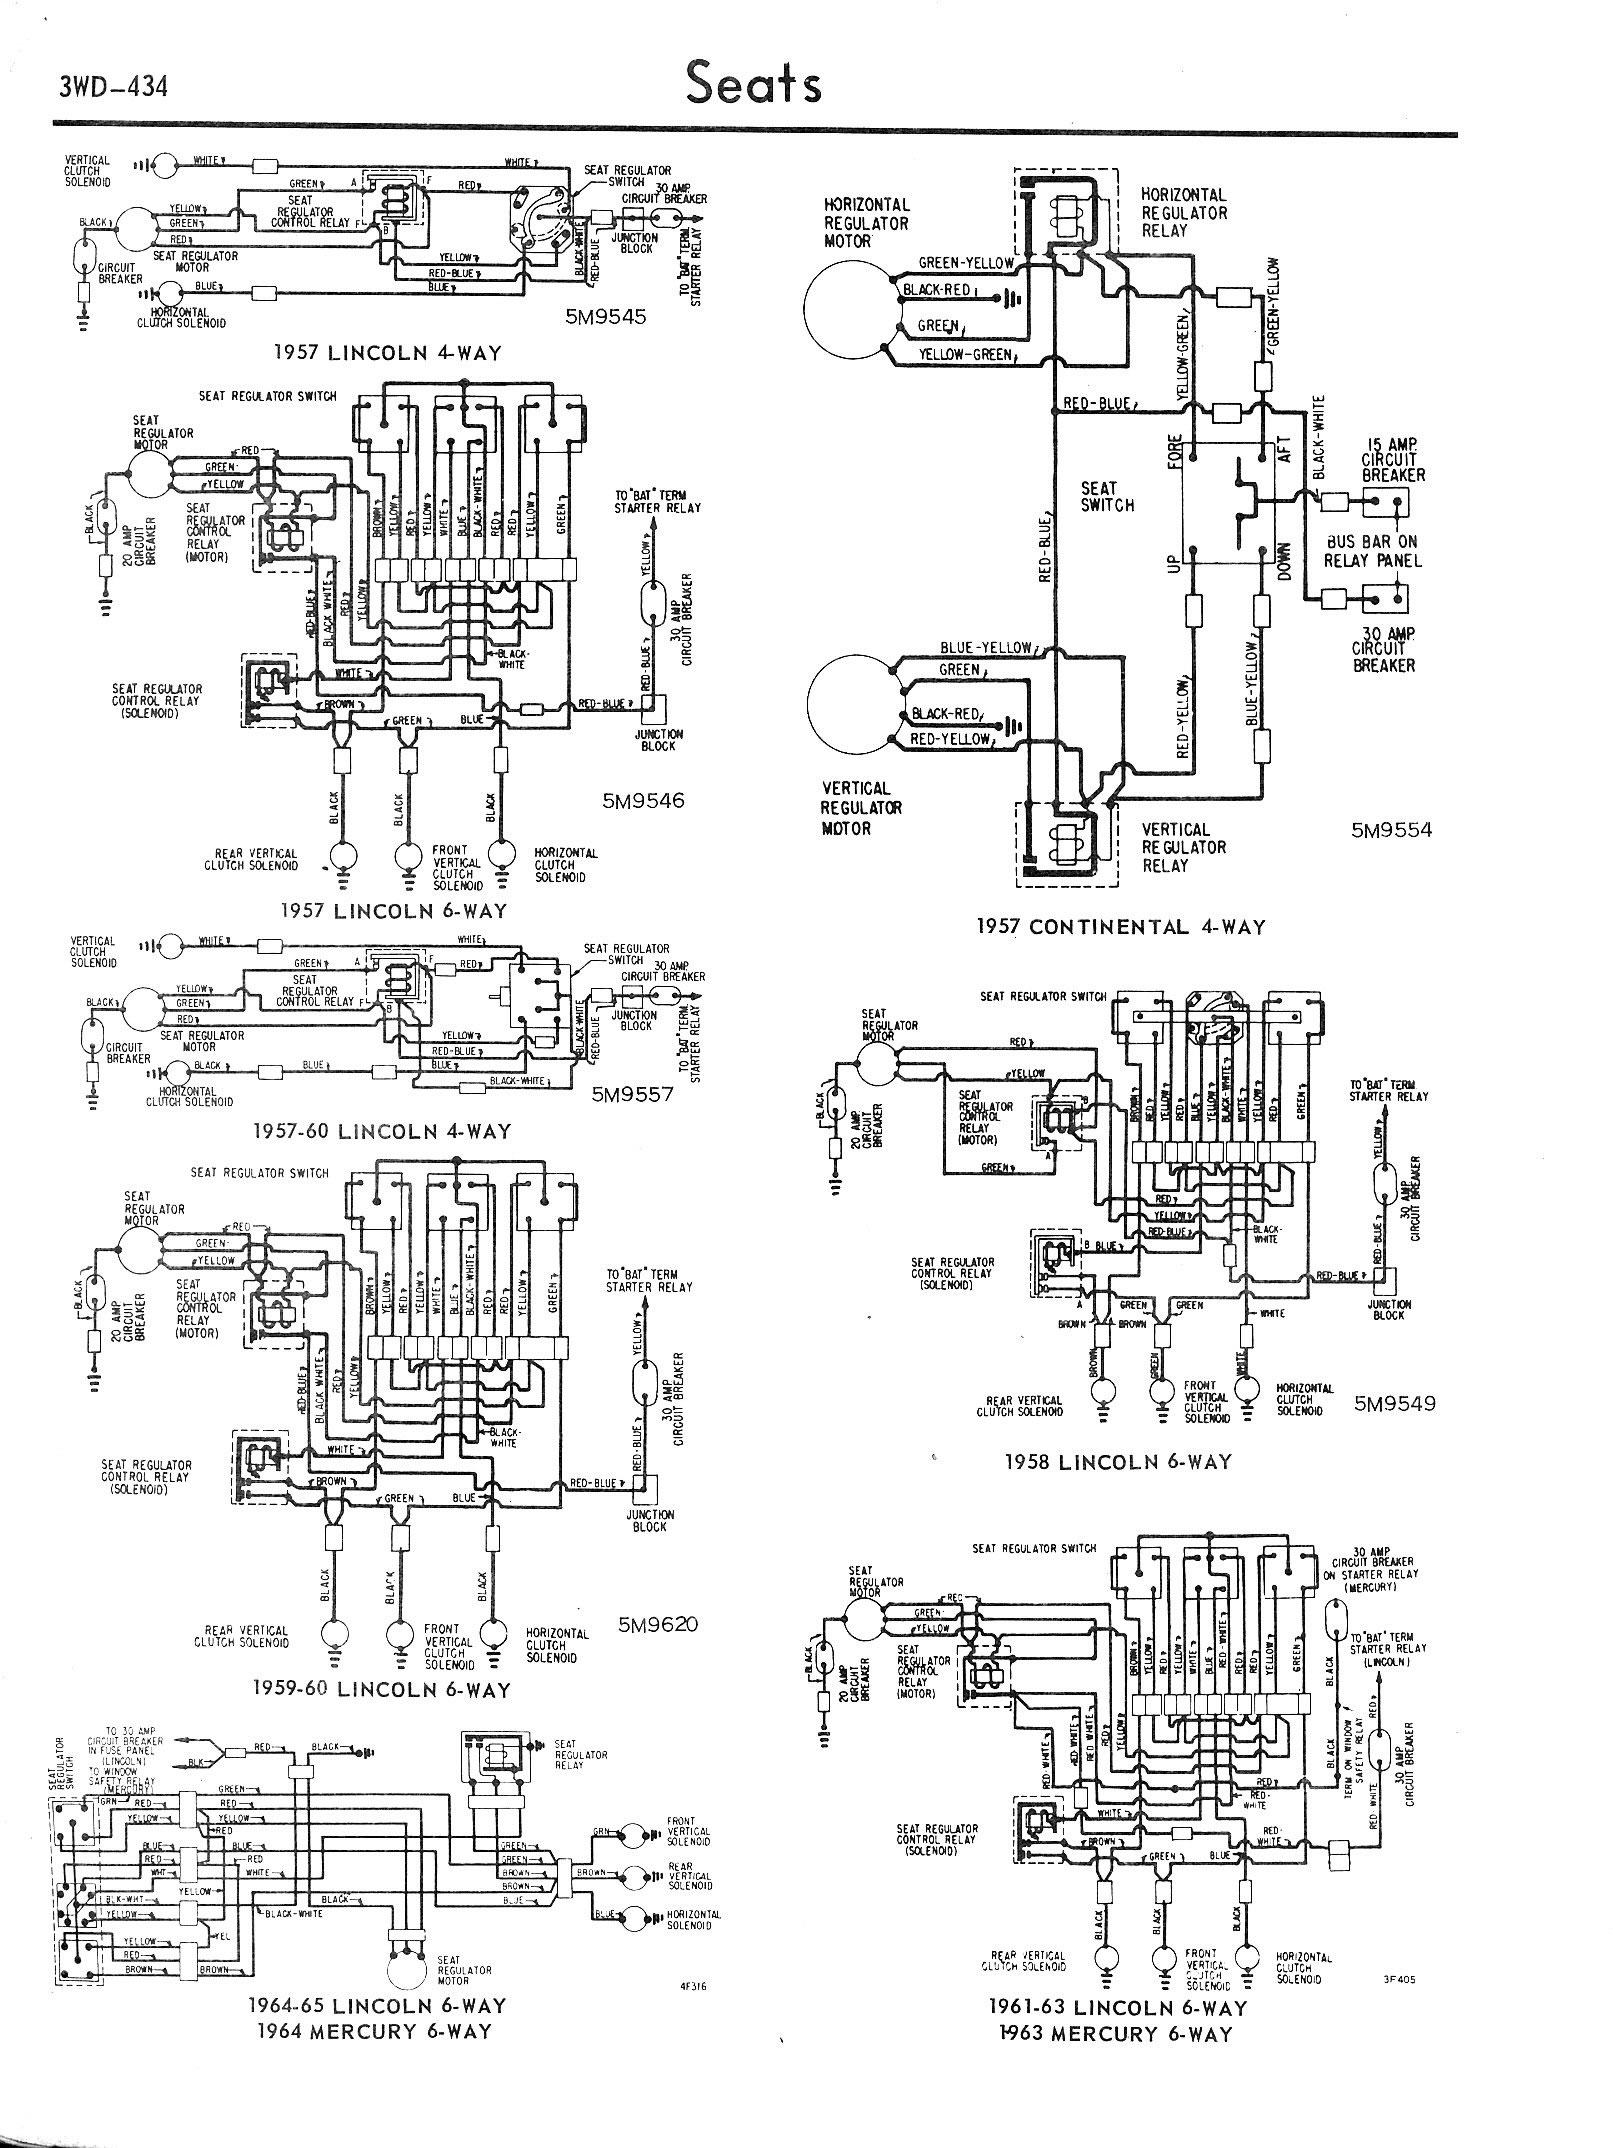 Ford Diagrams 1987 Mercruiser 7 4 Wiring Diagram 57 65 Lincoln Way 6 Continental 63 64 Mercury